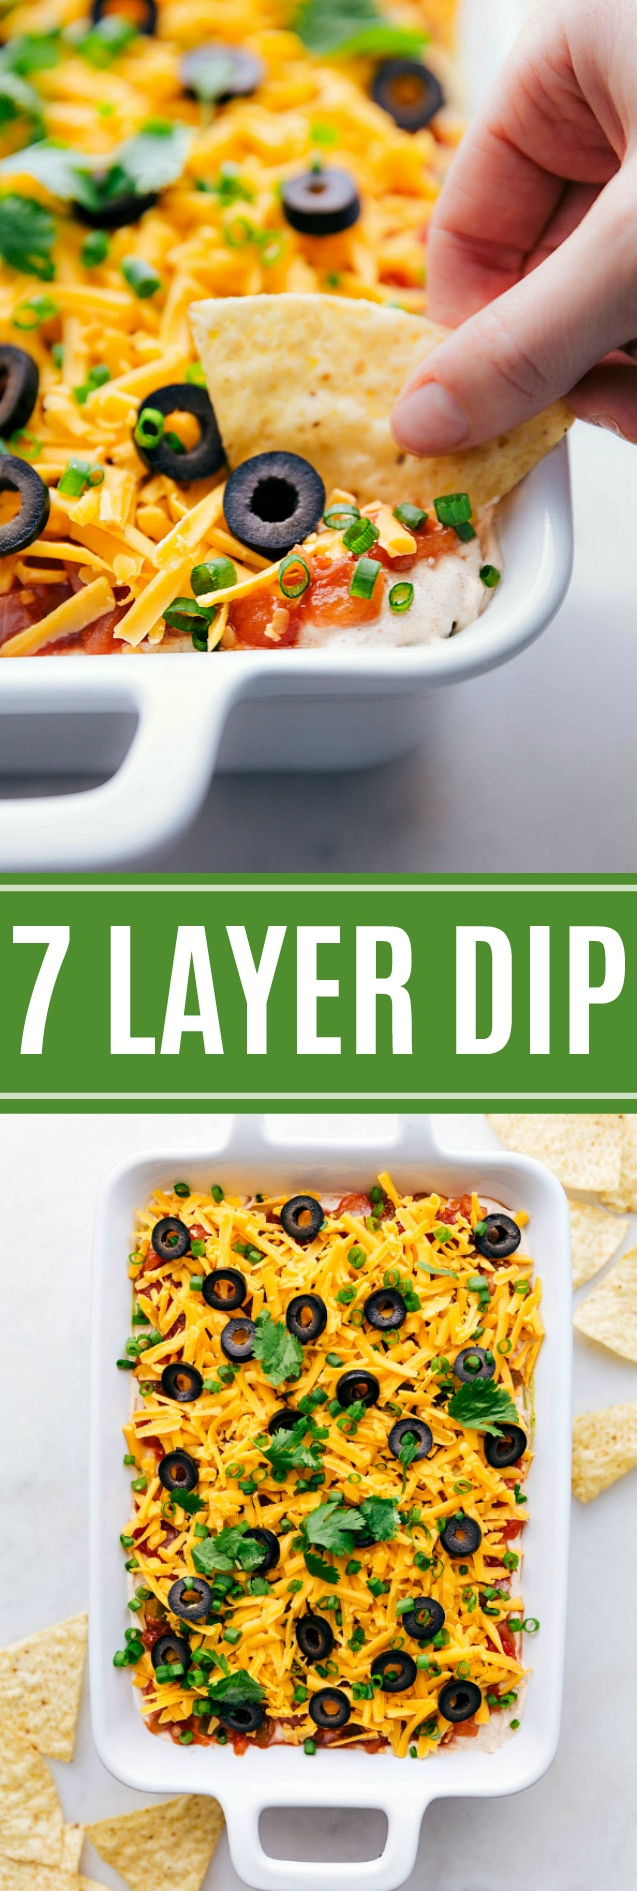 This 7 Layer Bean Dip is the ultimate game-day/party food. It's packed with delicious flavors and is so easy to assemble. via chelseasmessyapron.com #7 #layer #dip #easy #quick #game #day #food #appetizer #dips #party #food #newyearseve #kidfriendly #mexican